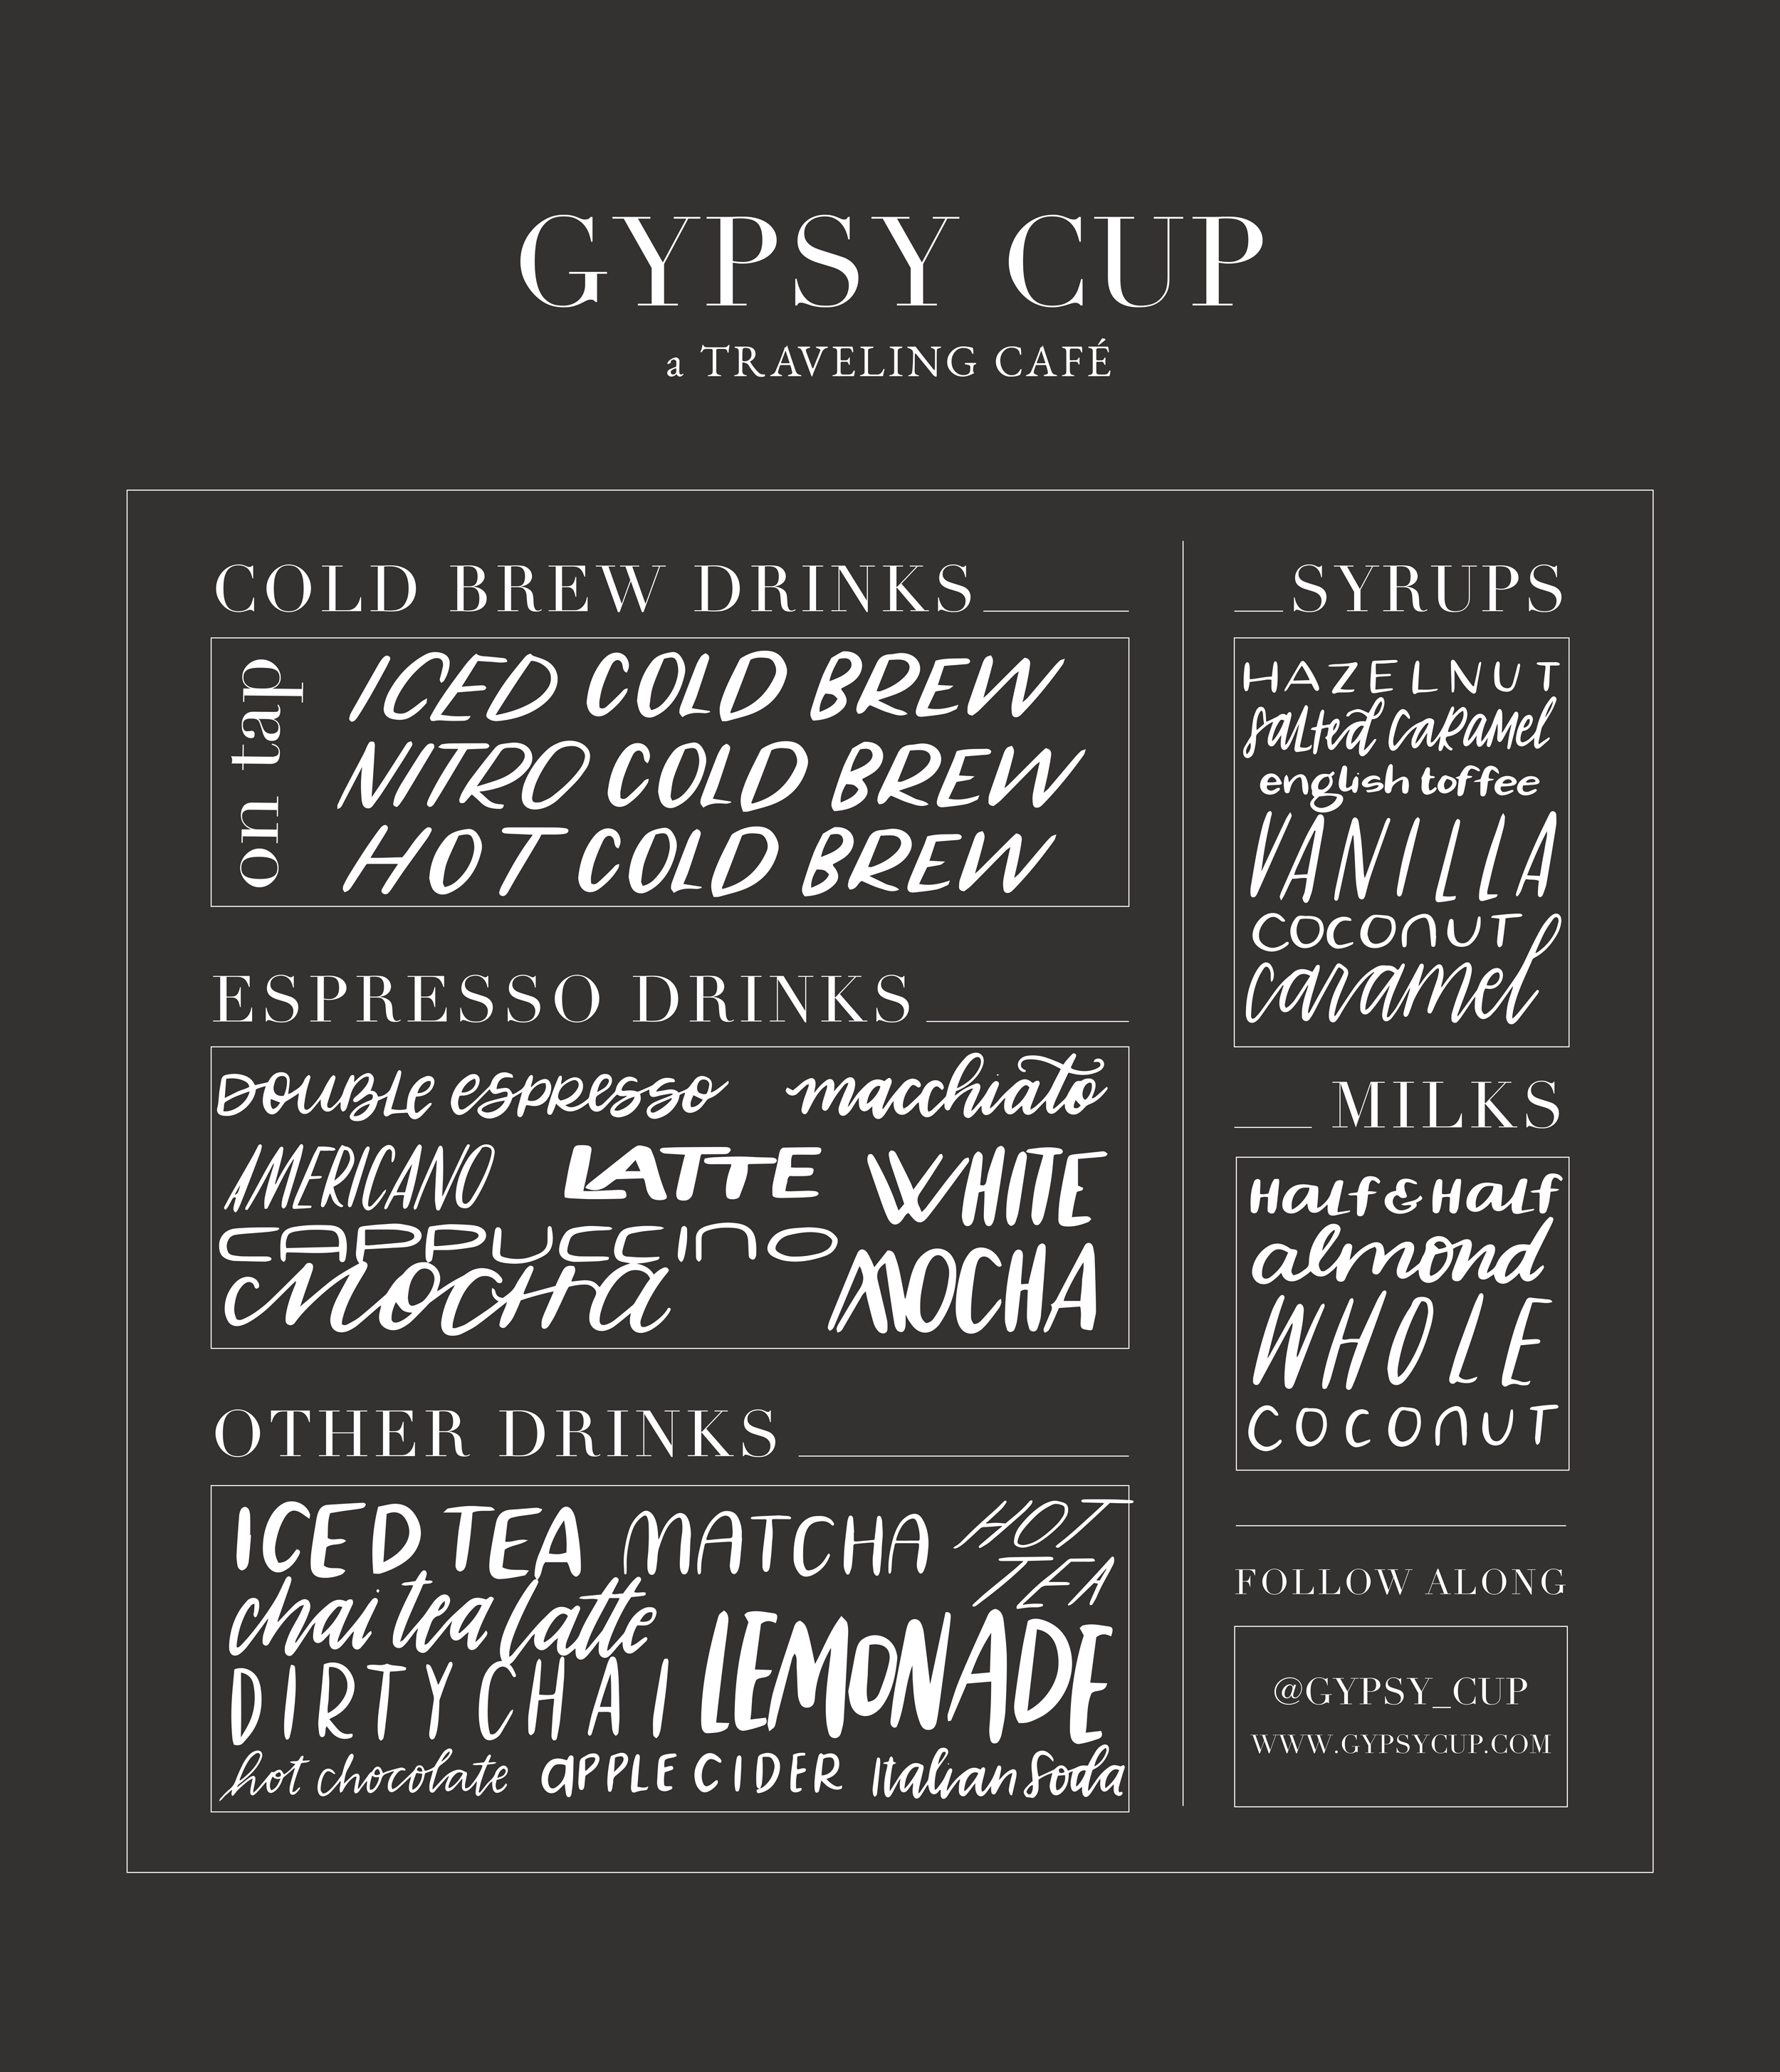 GypsyCup-Main.png